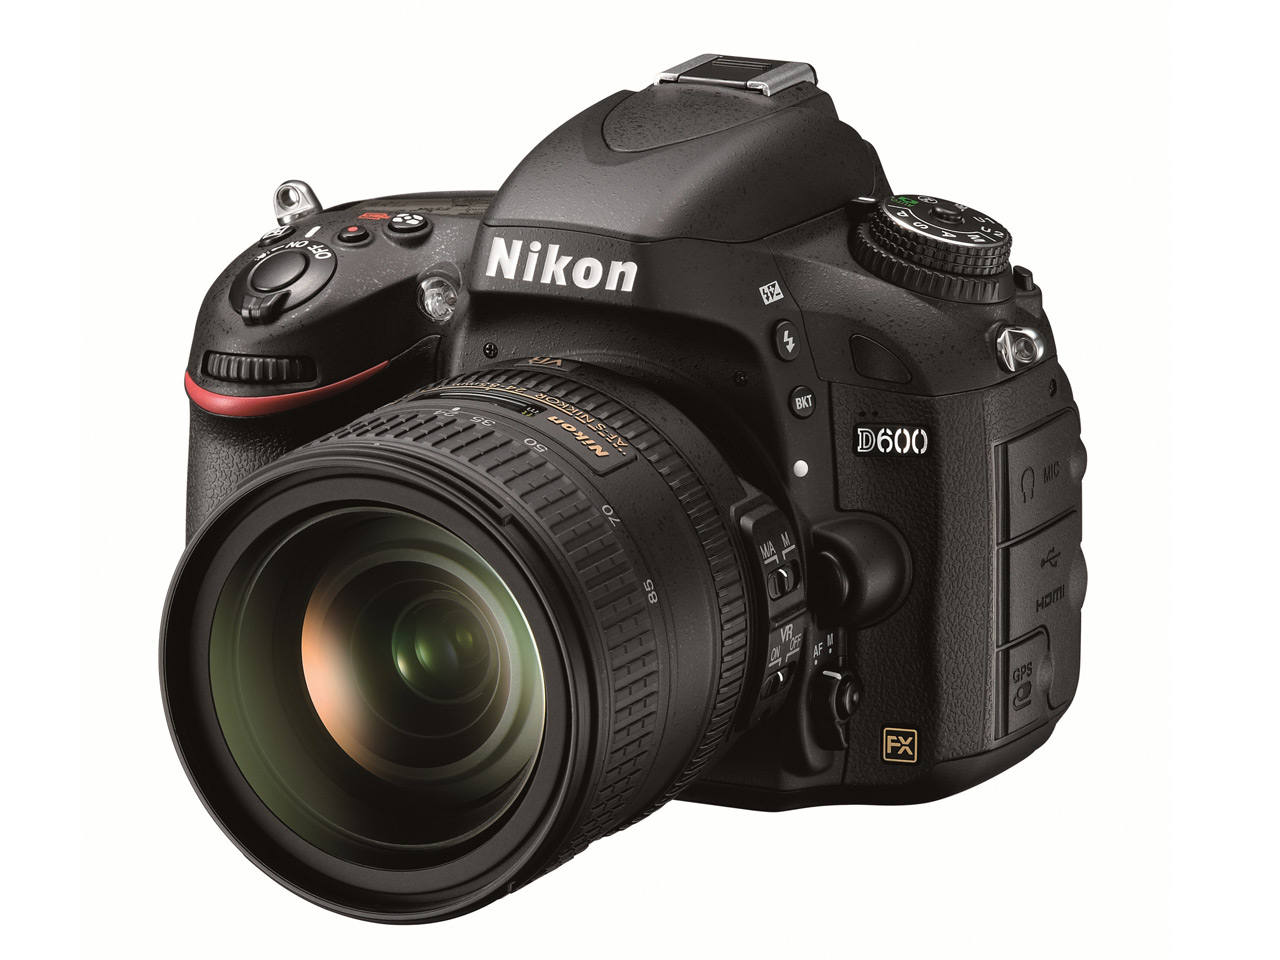 Nikon announces D600 24MP enthusiast full-frame DSLR: Digital ...